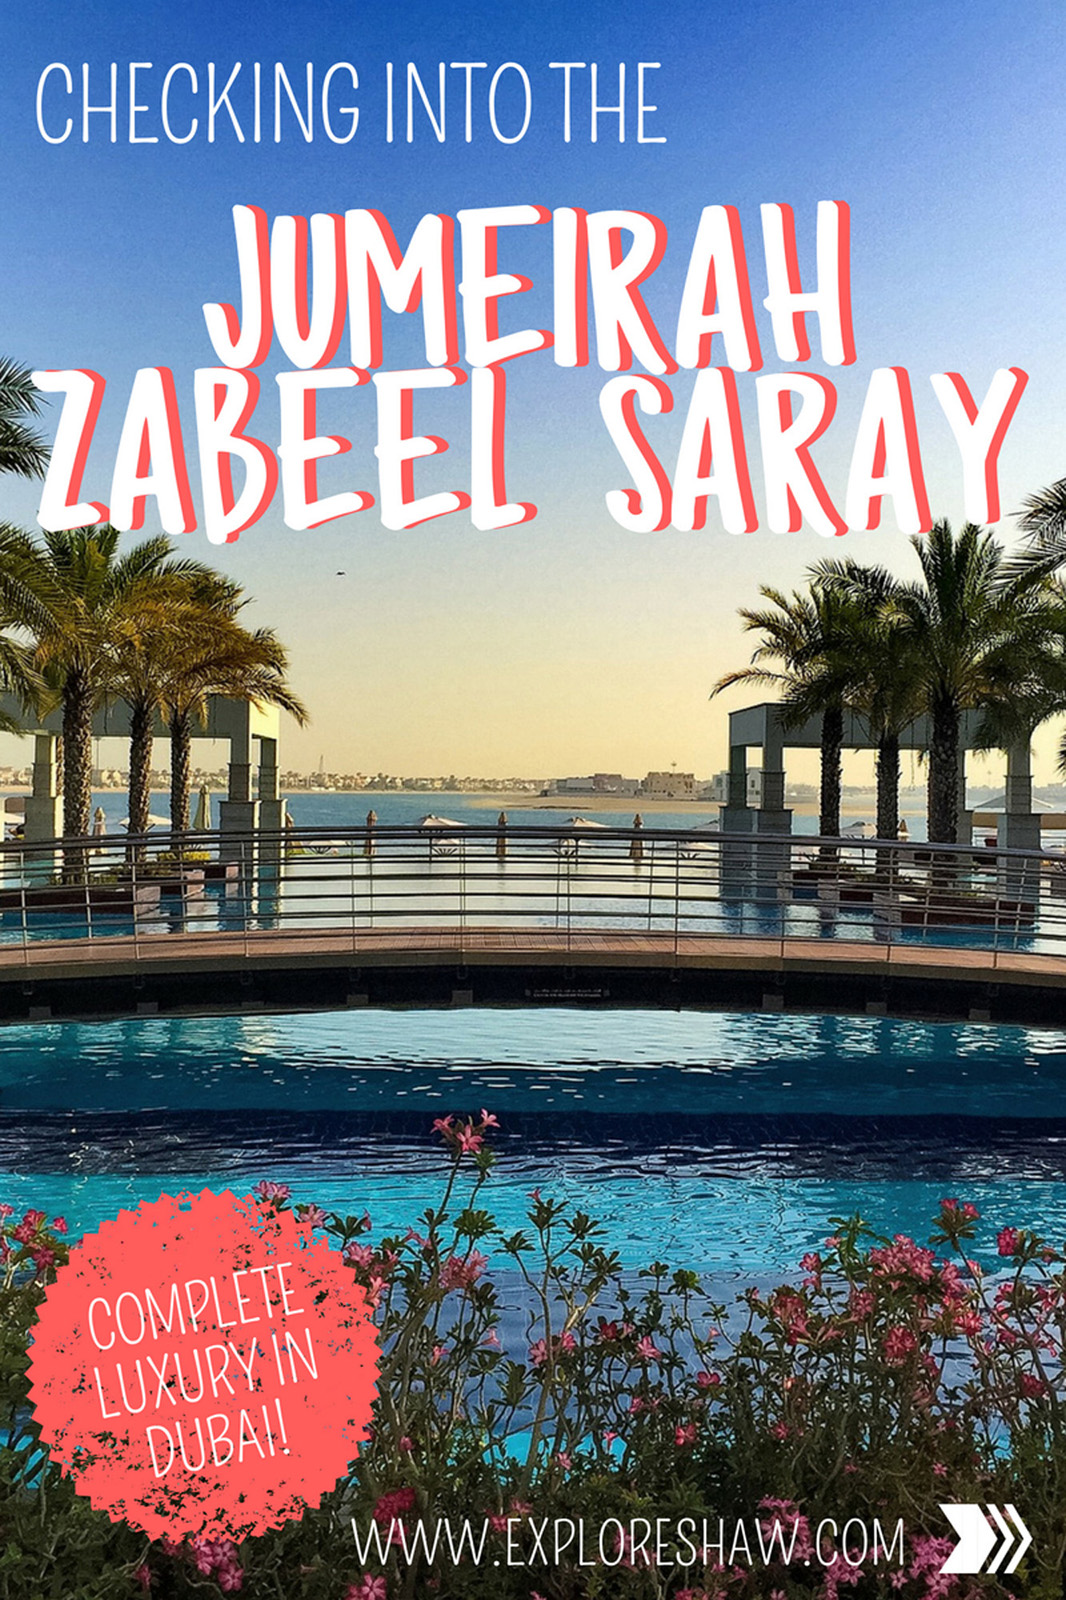 Checking into the Jumeirah Zabeel Saray